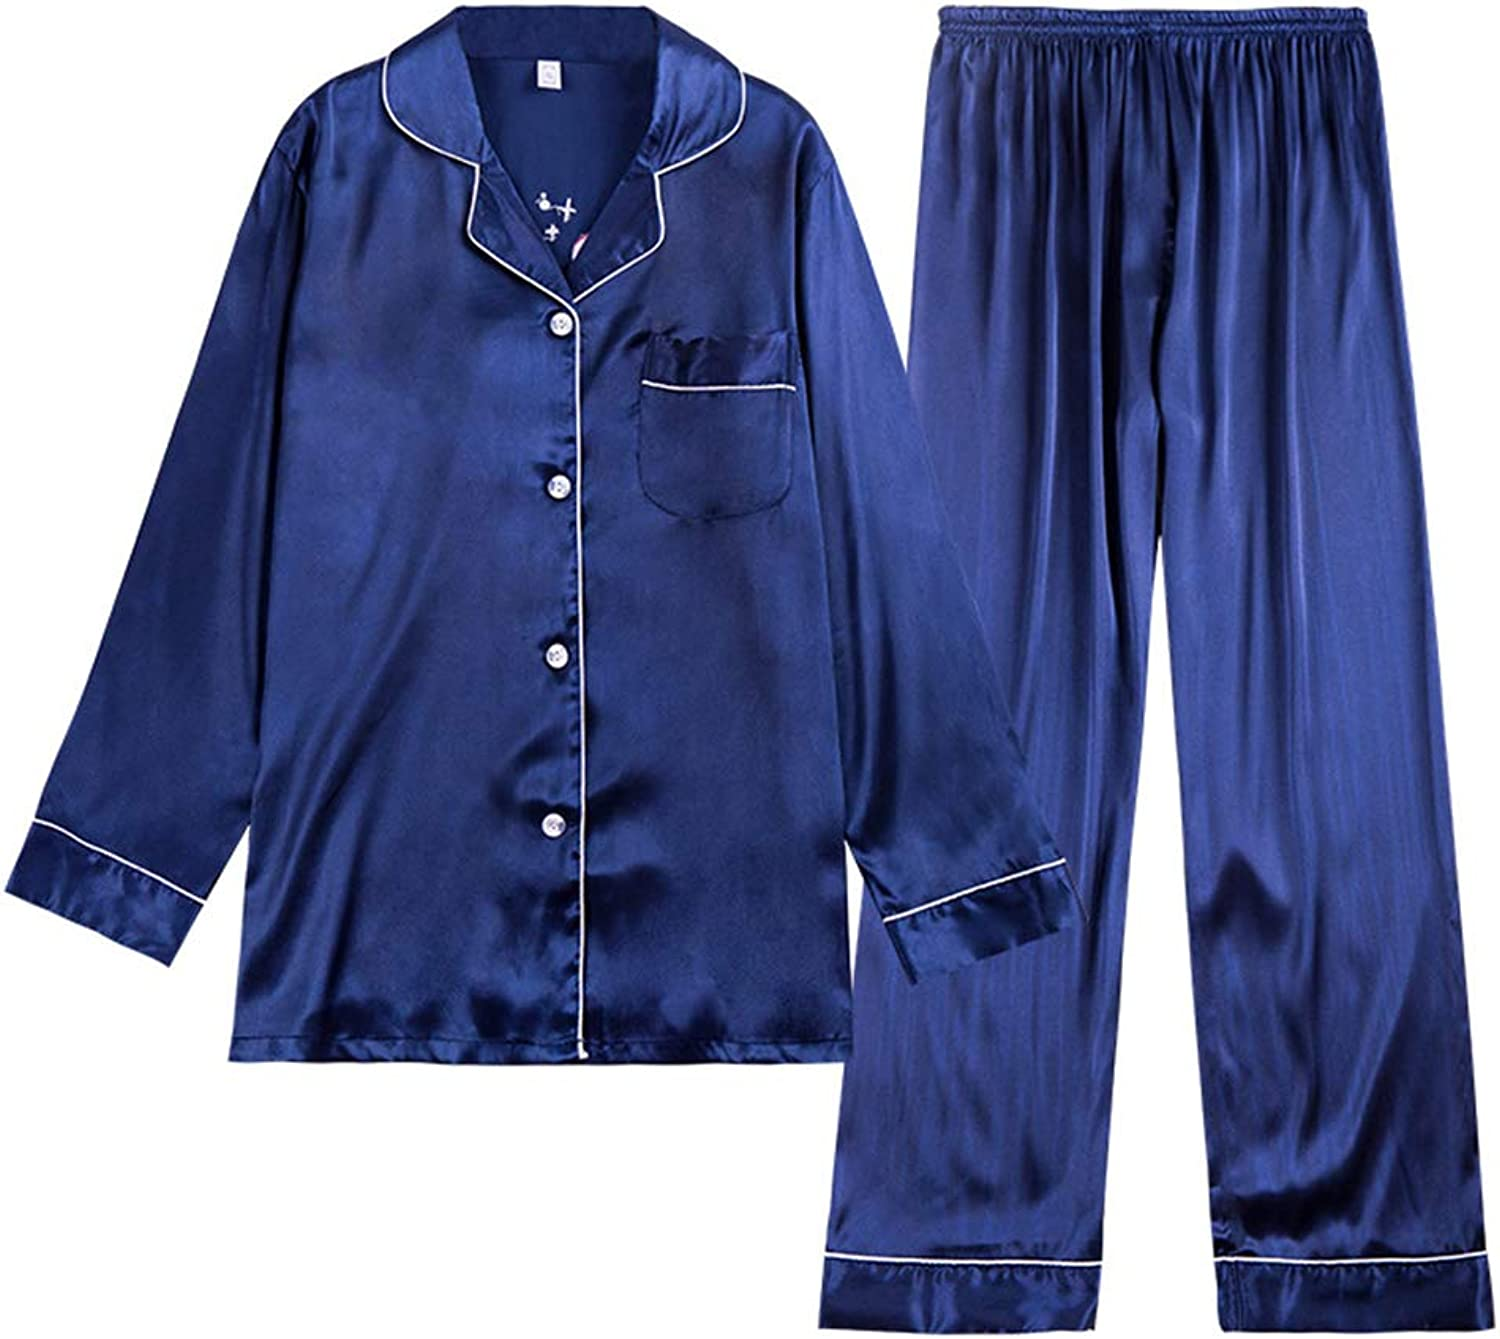 Spring Summer bluee Pink Pajamas Ms Long Sleeve Trousers Comfortable Leisure Daily Women's Clothing Home Clothes TwoPiece Set,bluee,M